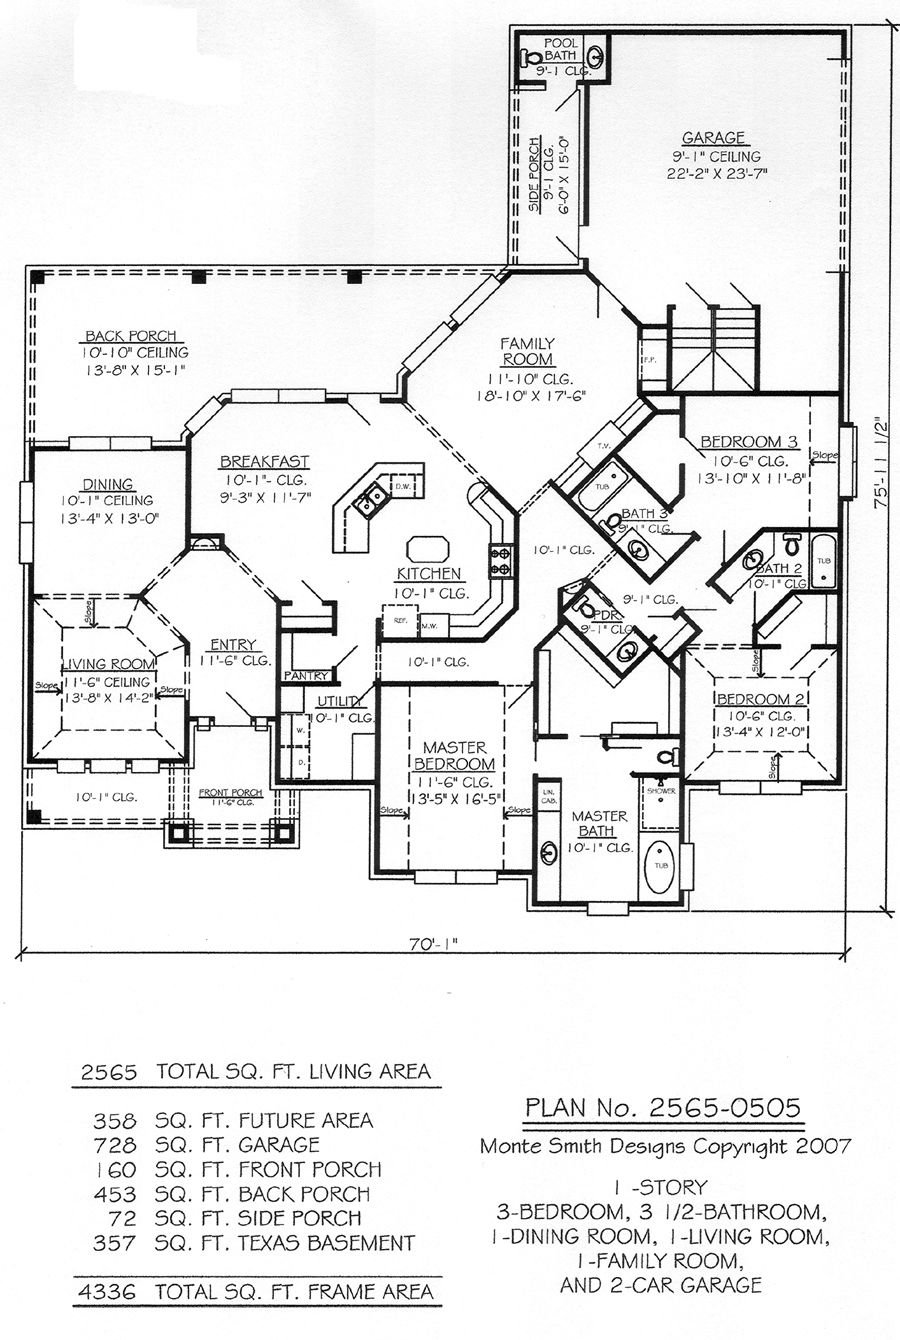 1 story 3 bedroom 3 1 2 bathroom 1 dining room 1 House floor plans without garage